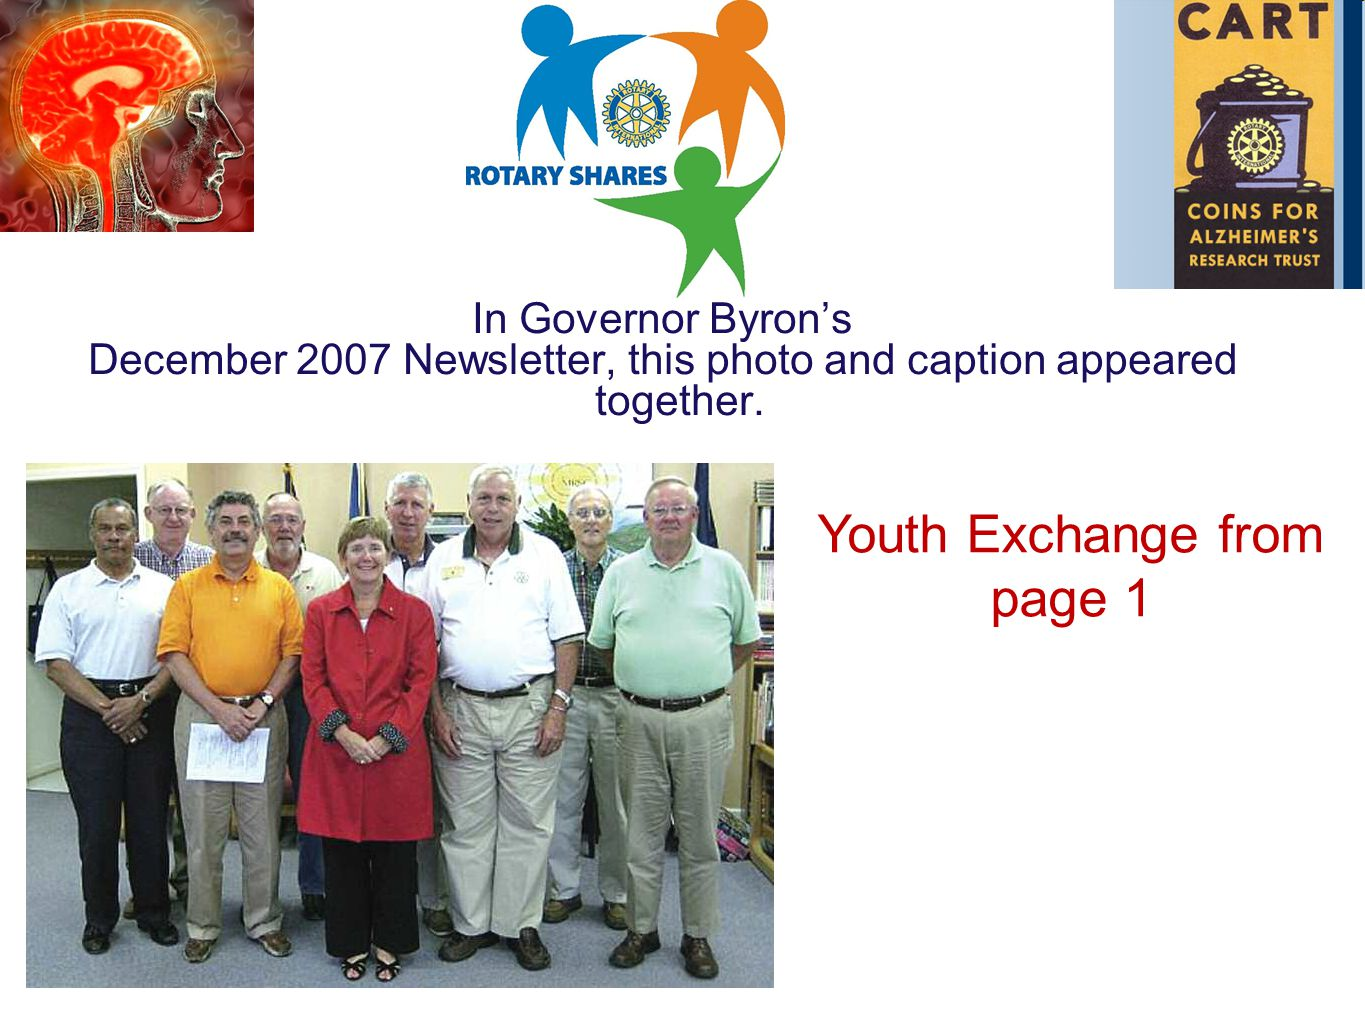 In Governor Byron's December 2007 Newsletter, this photo and caption appeared together.